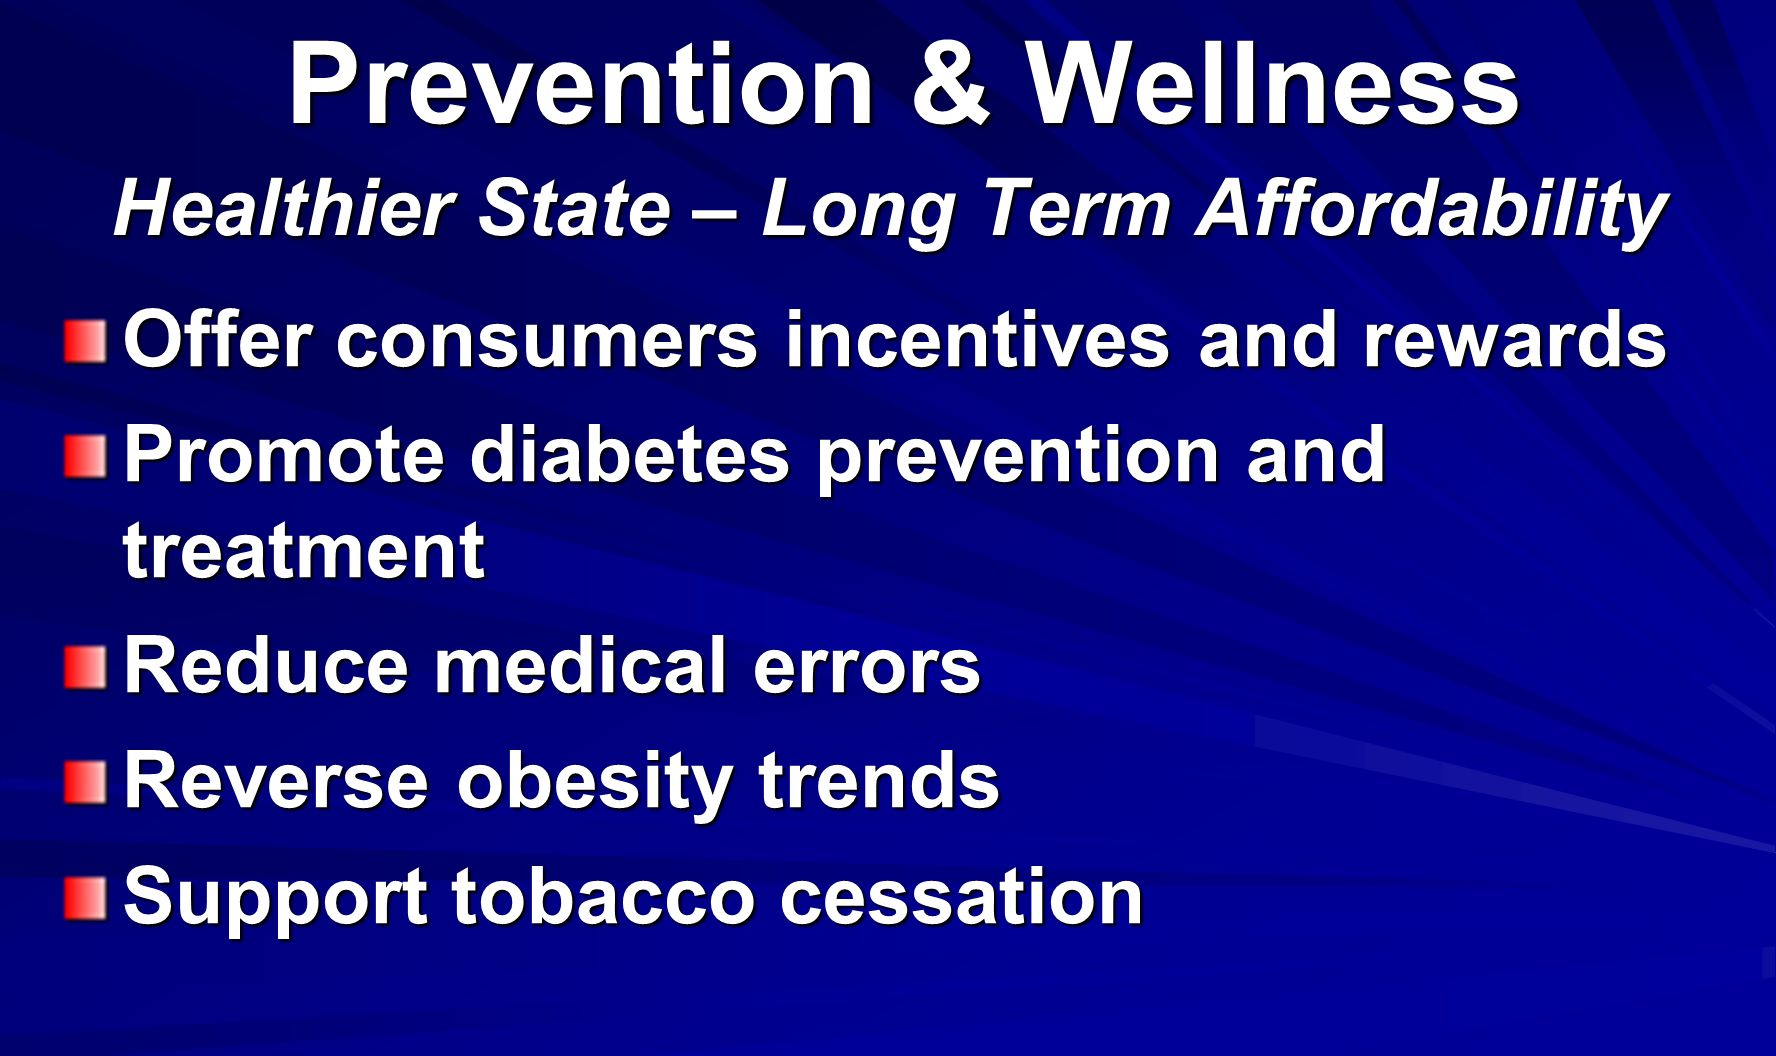 Prevention & Wellness Healthier State – Long Term Affordability Prevention & Wellness Healthier State – Long Term Affordability Offer consumers incentives and rewards Promote diabetes prevention and treatment Reduce medical errors Reverse obesity trends Support tobacco cessation